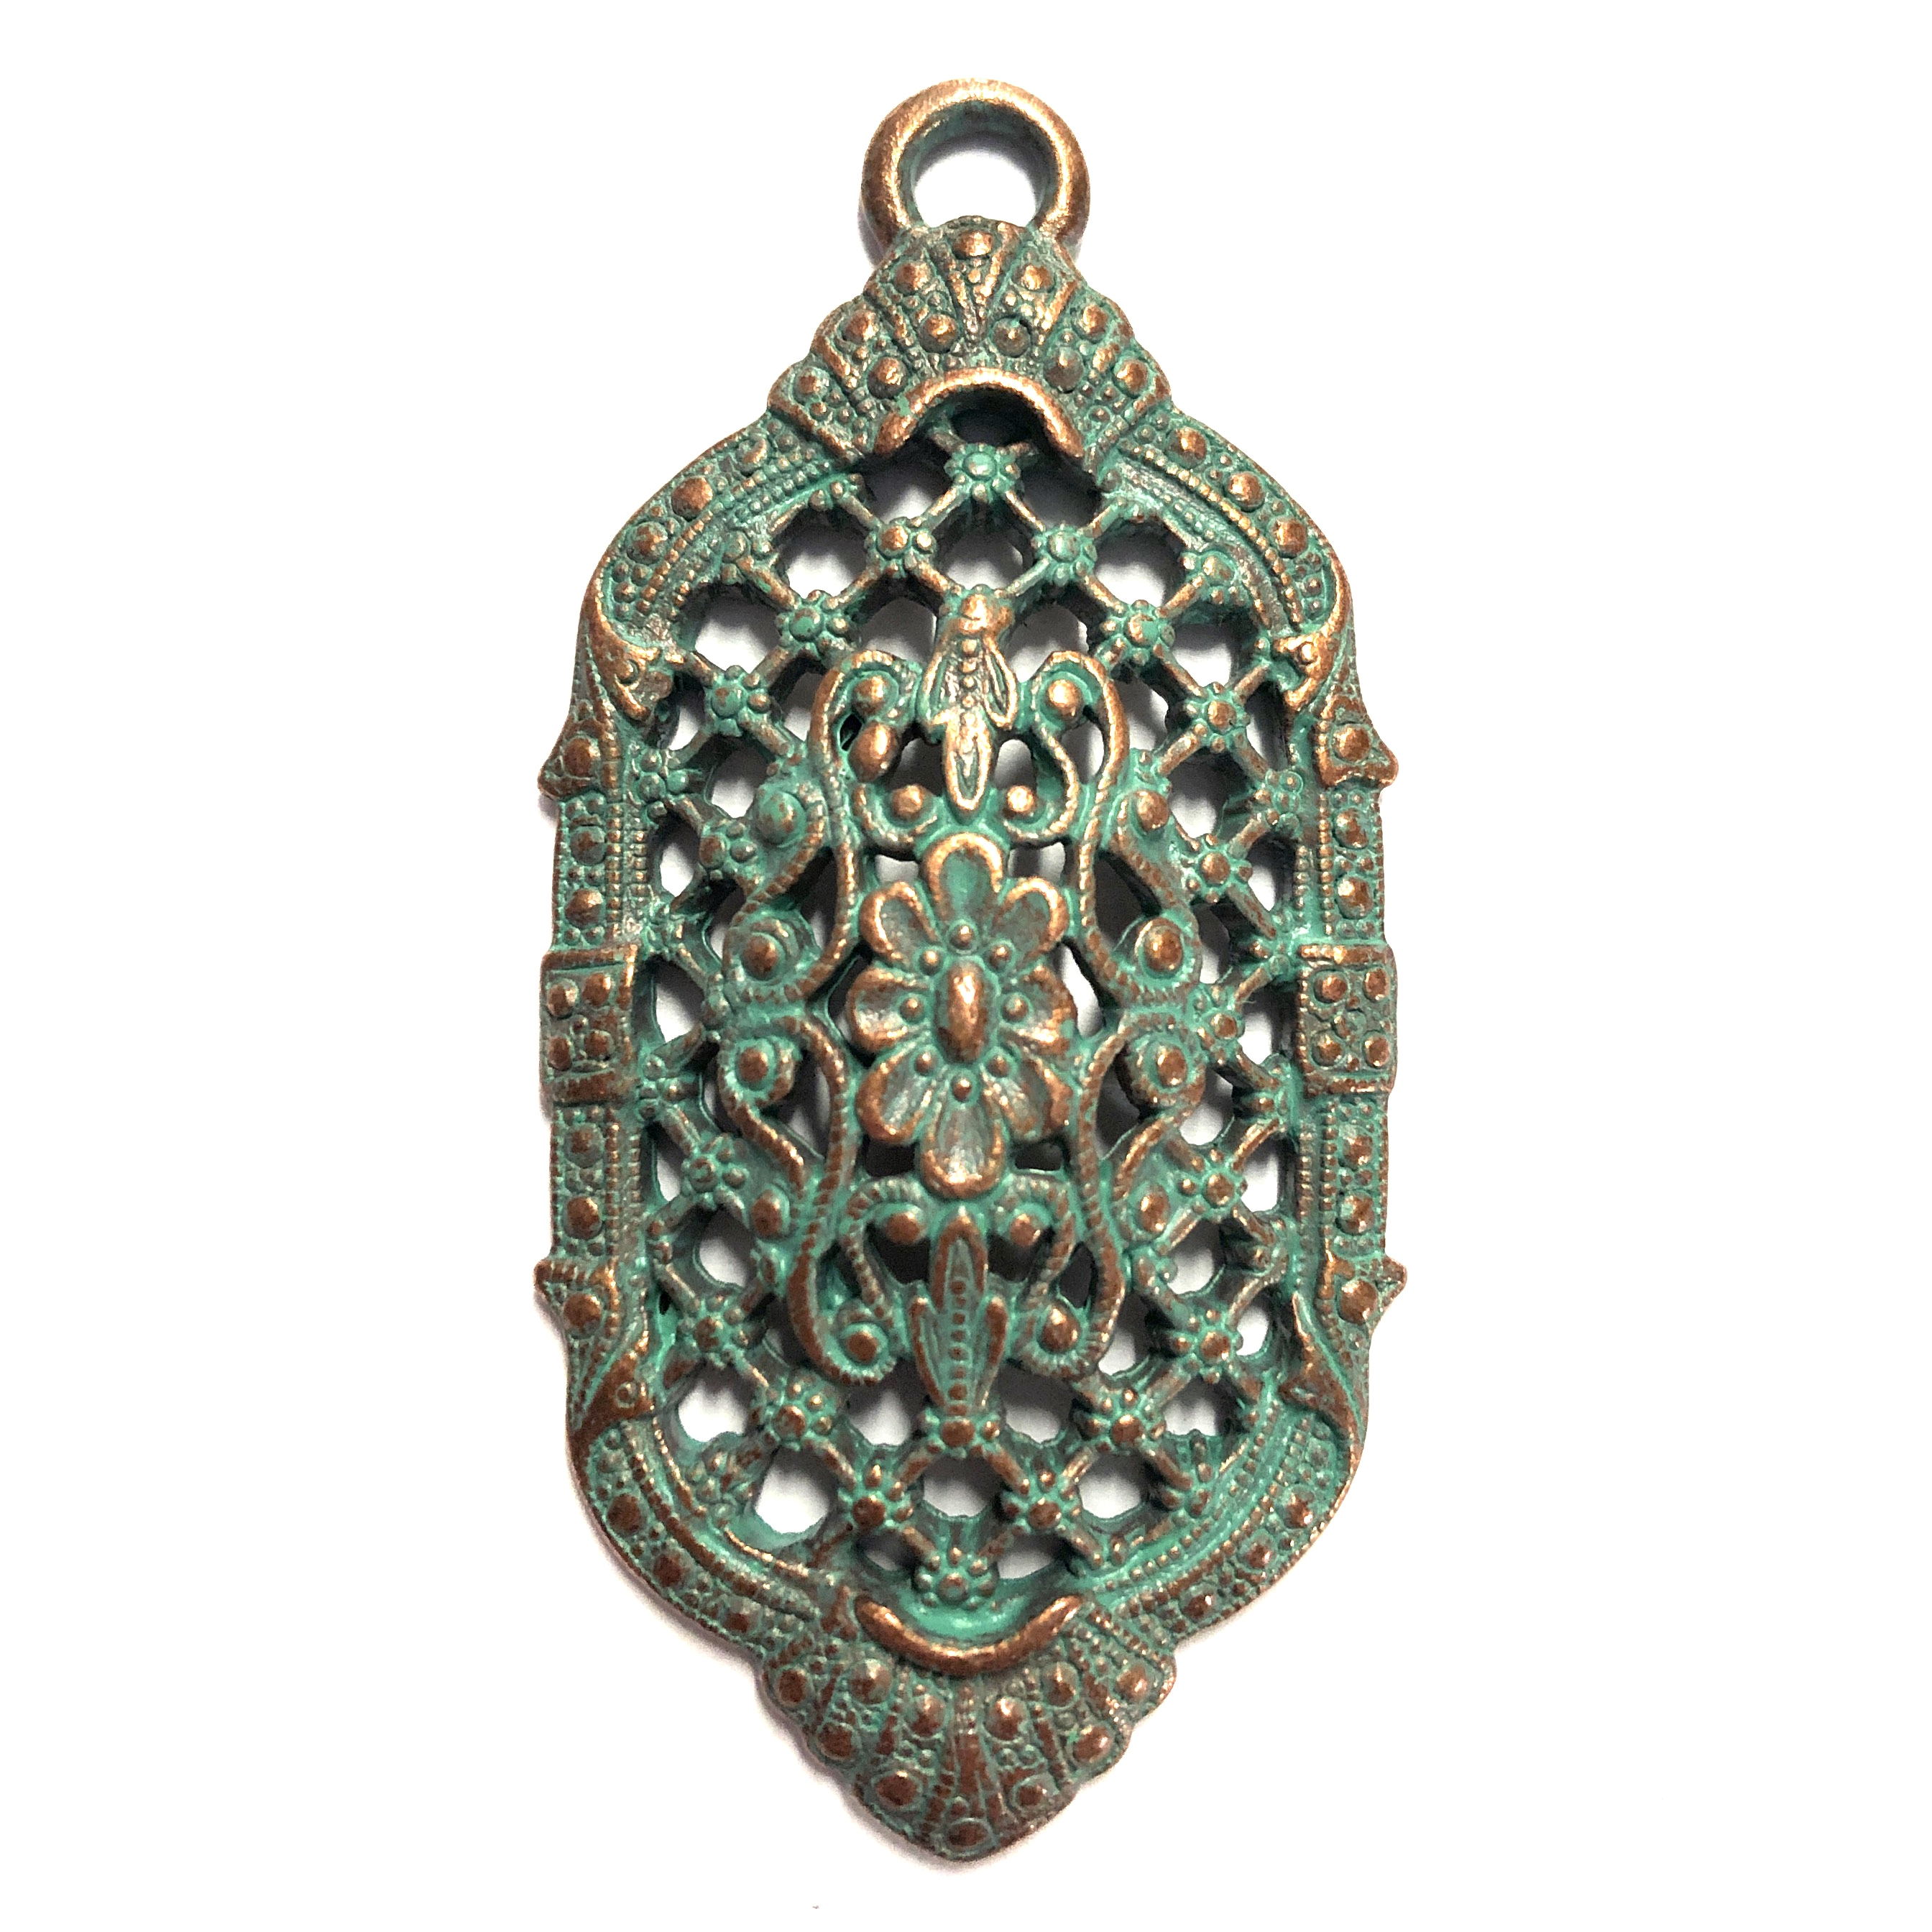 Victorian filigree pendant, lattice filigree, weathered copper, lead free, pewter castings, cast pewter jewelry parts, vintage, 1928 Jewelry, B'sue Boutiques, B'sue by 1928, weathered green patina, pewter jewelry findings, us made, 0242